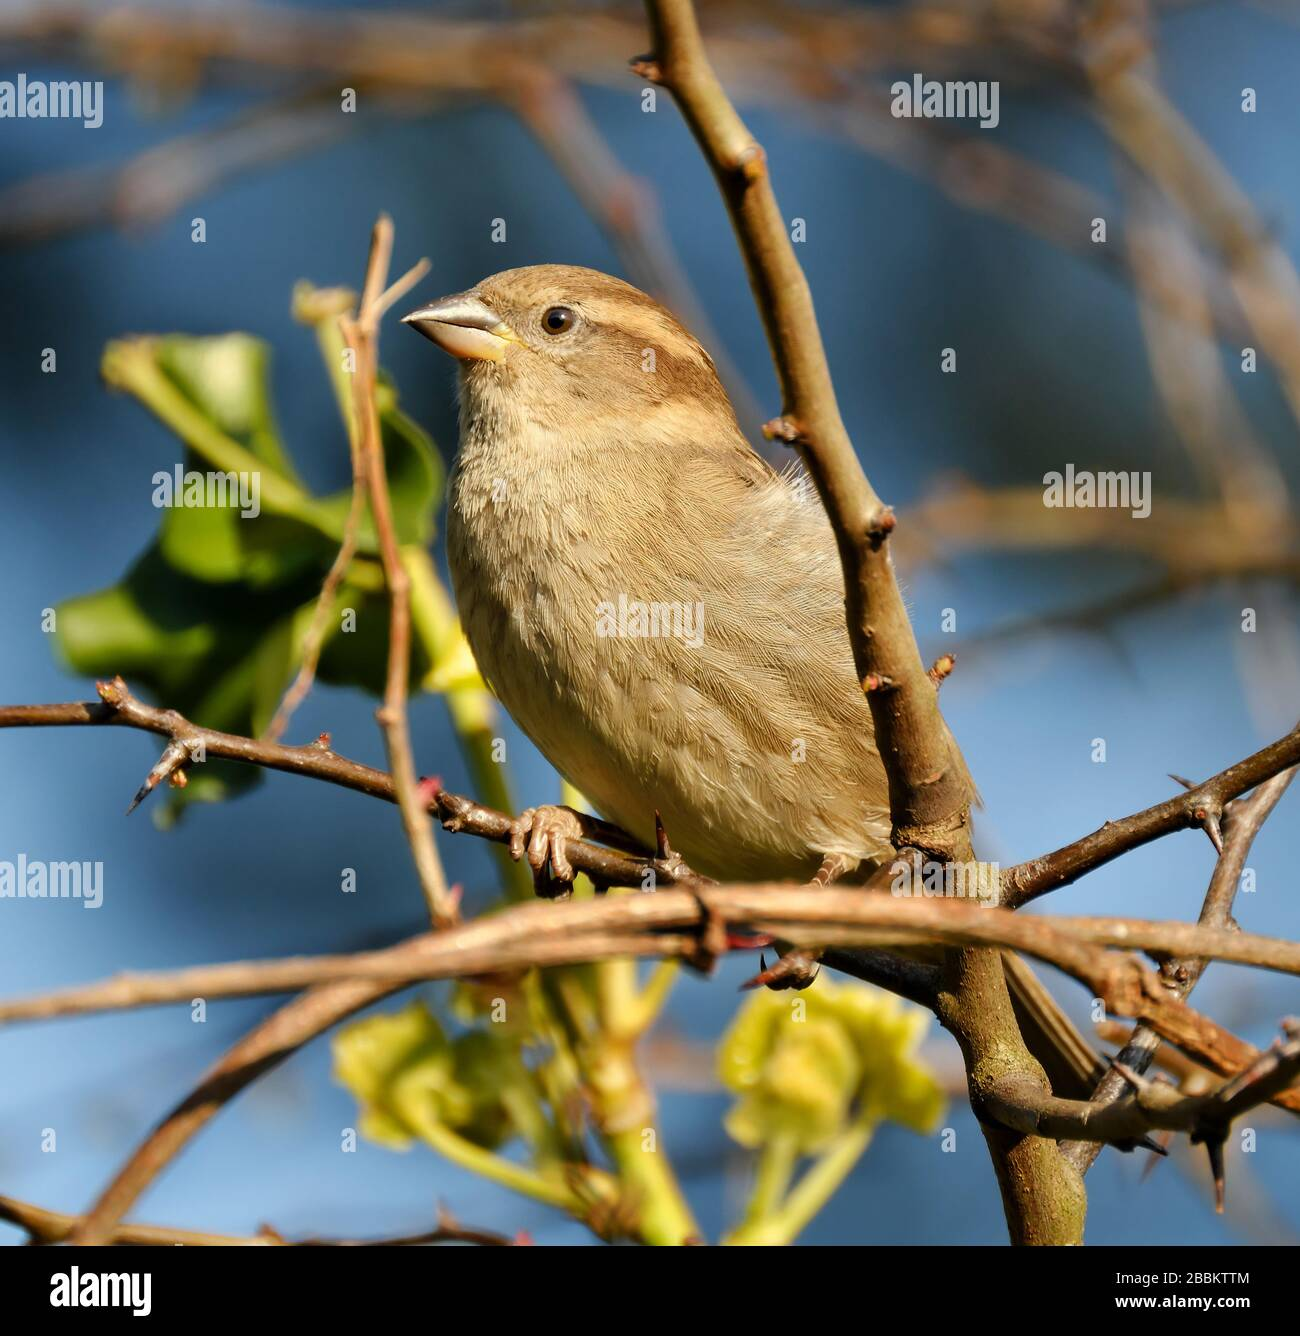 House sparrow in urban garden looking for food in winter sunshine. Stock Photo